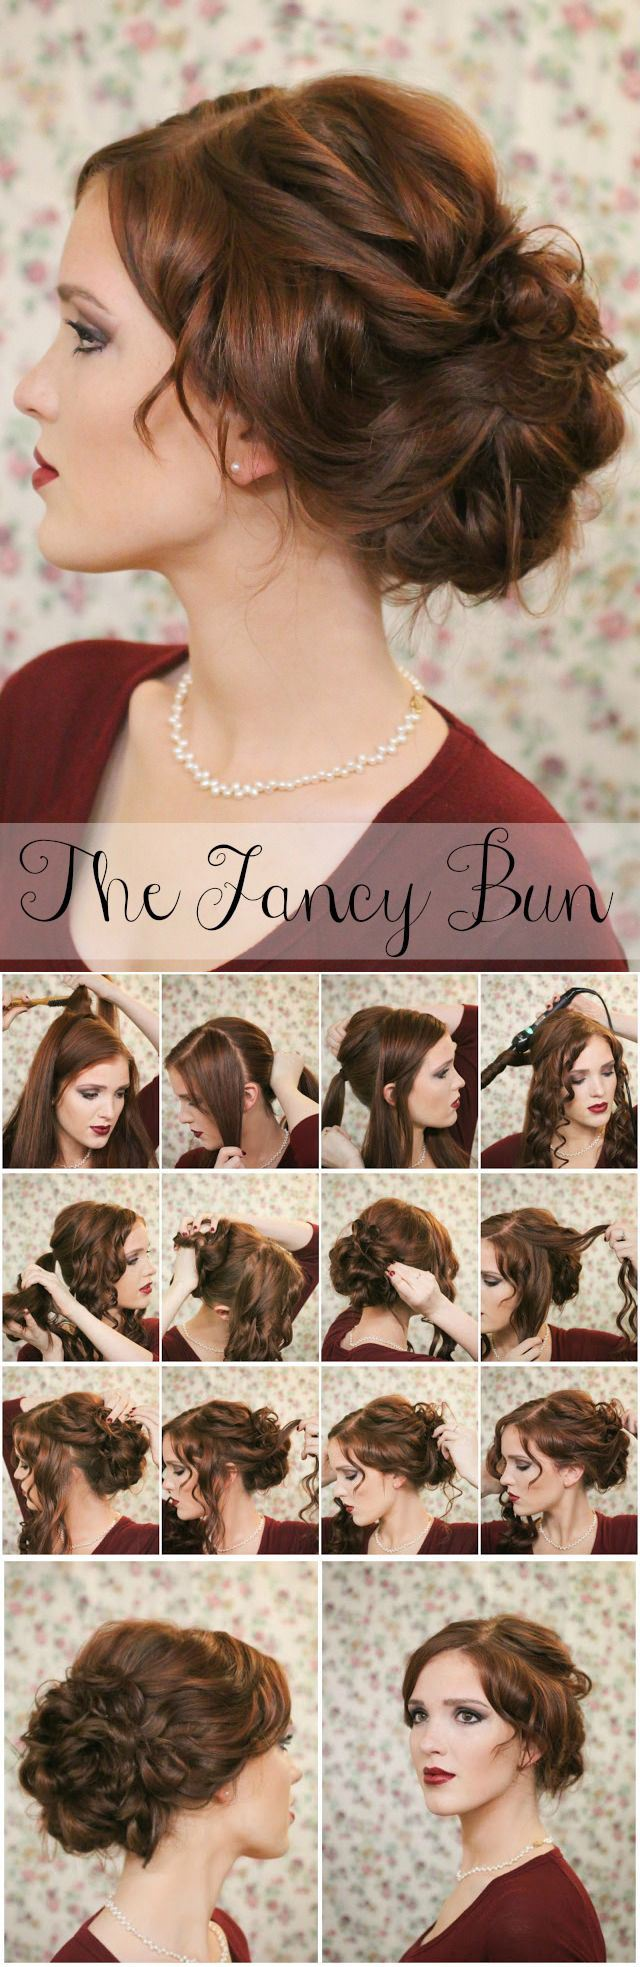 Awesome Top 25 Messy Hair Bun Tutorials Perfect For Those Lazy Mornings Short Hairstyles For Black Women Fulllsitofus